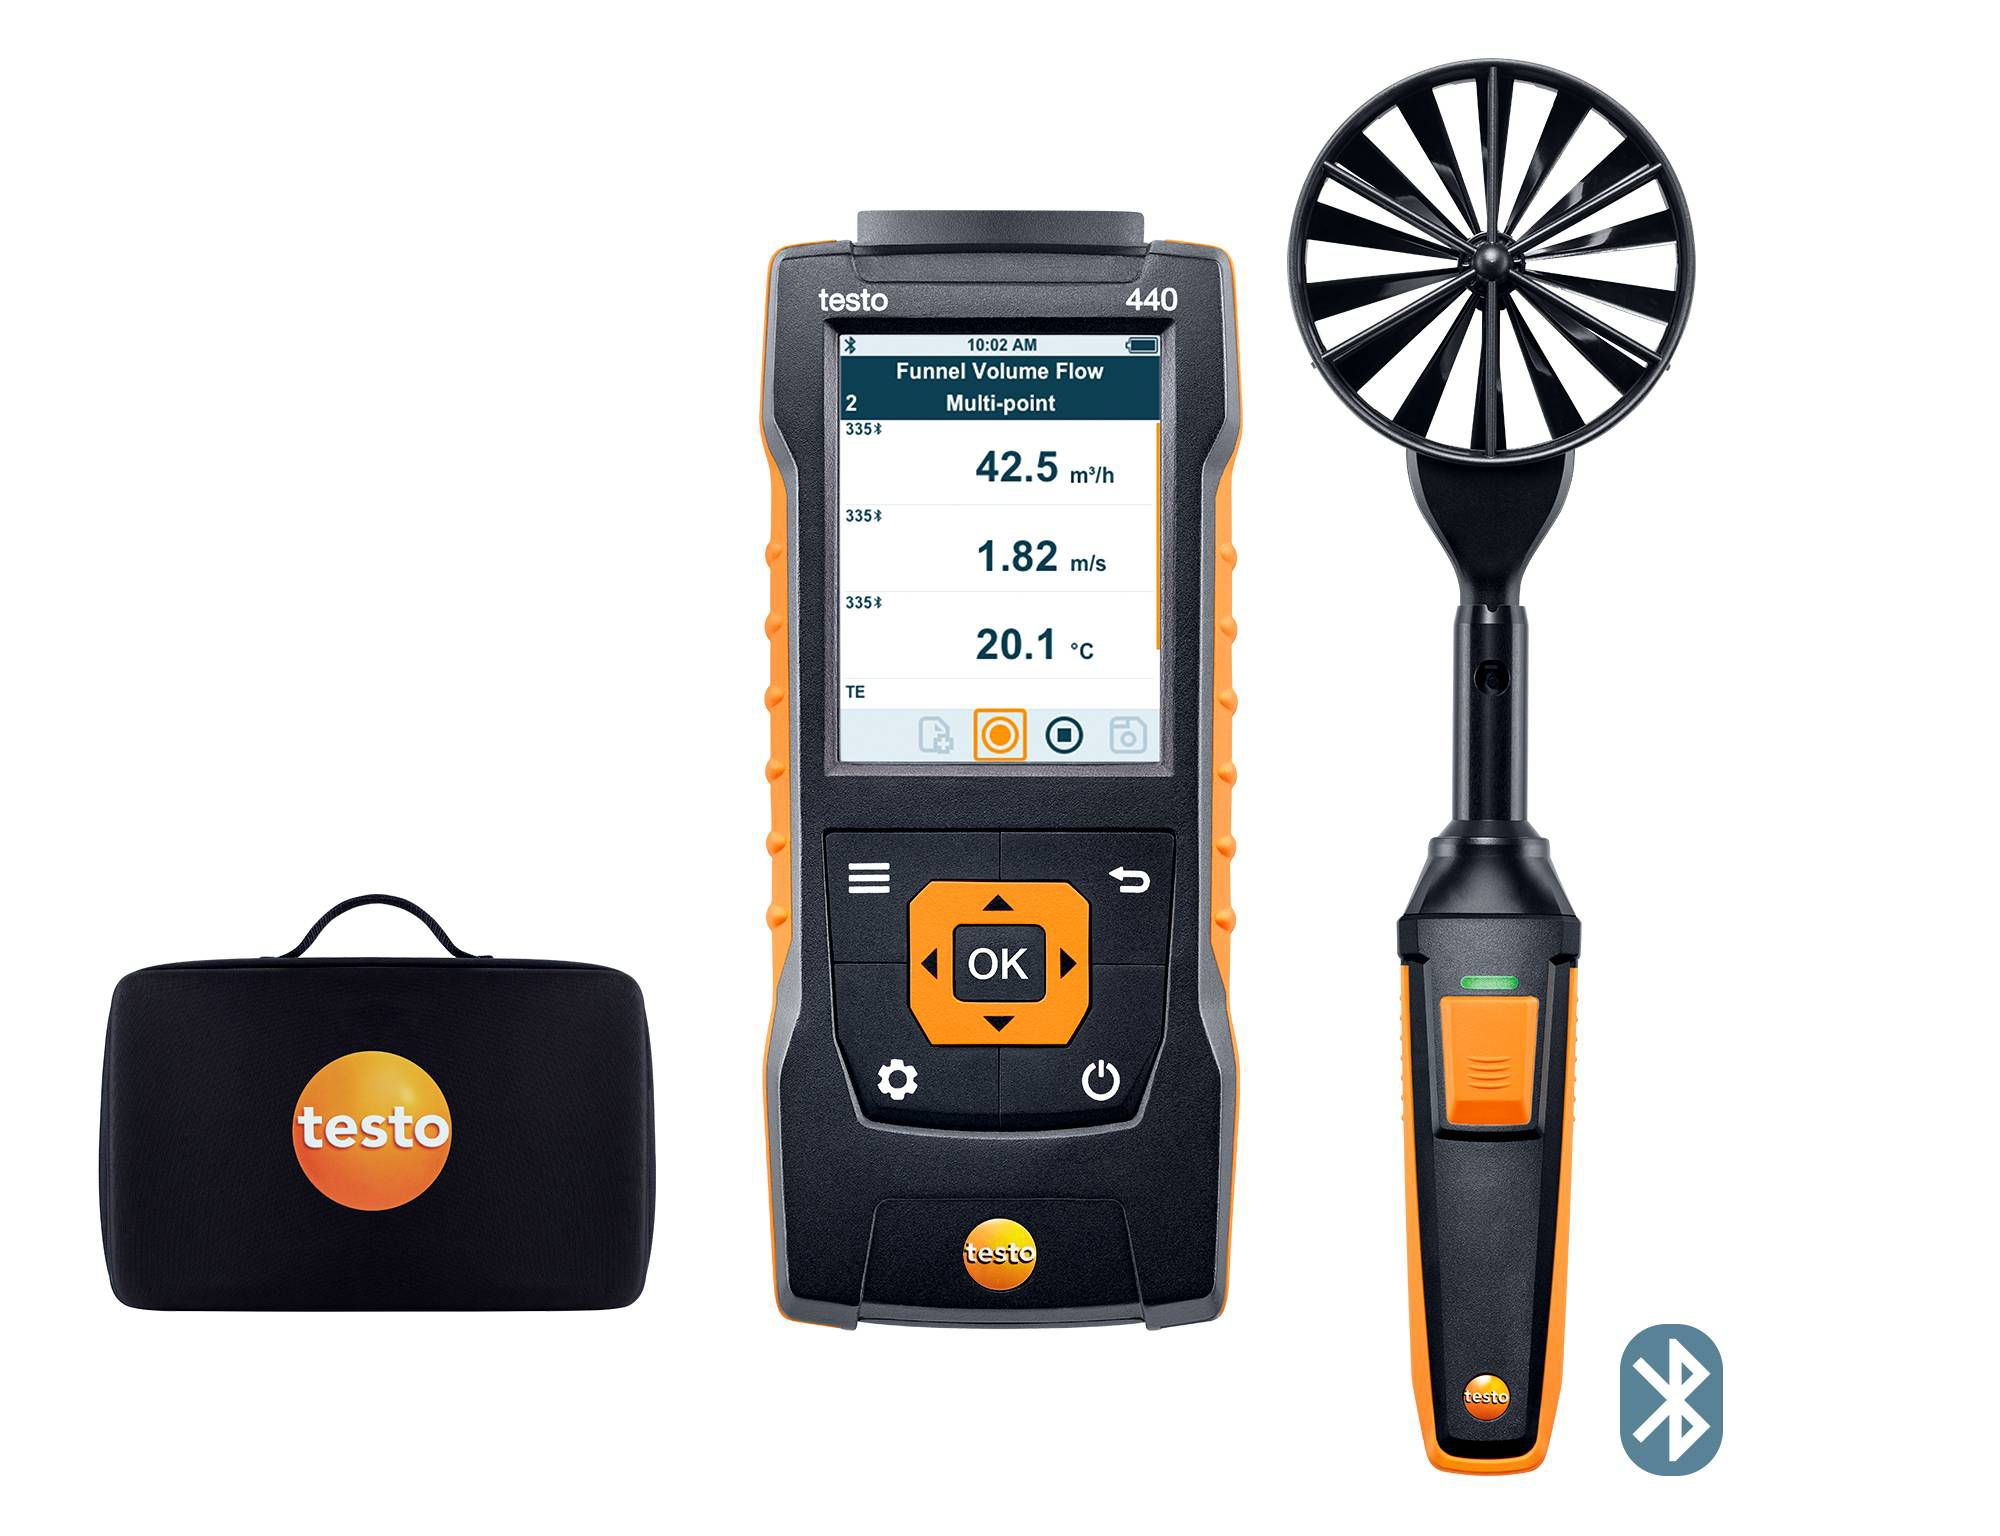 Set de molinete de 100 mm testo 440 con Bluetooth®